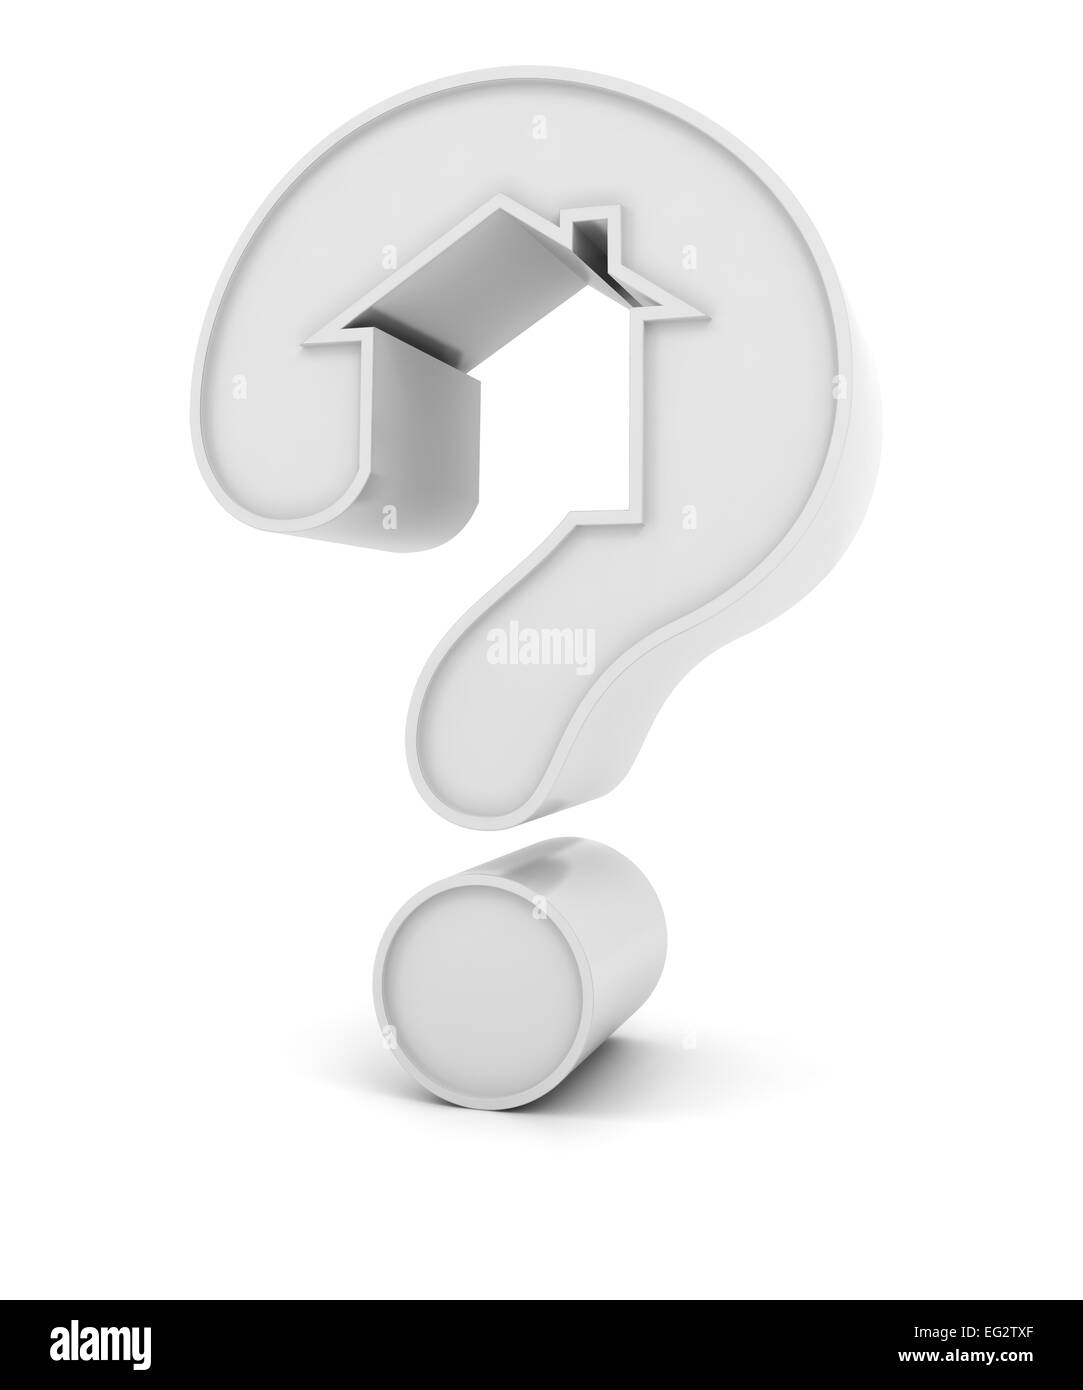 Question mark in the shape of a house - Stock Image